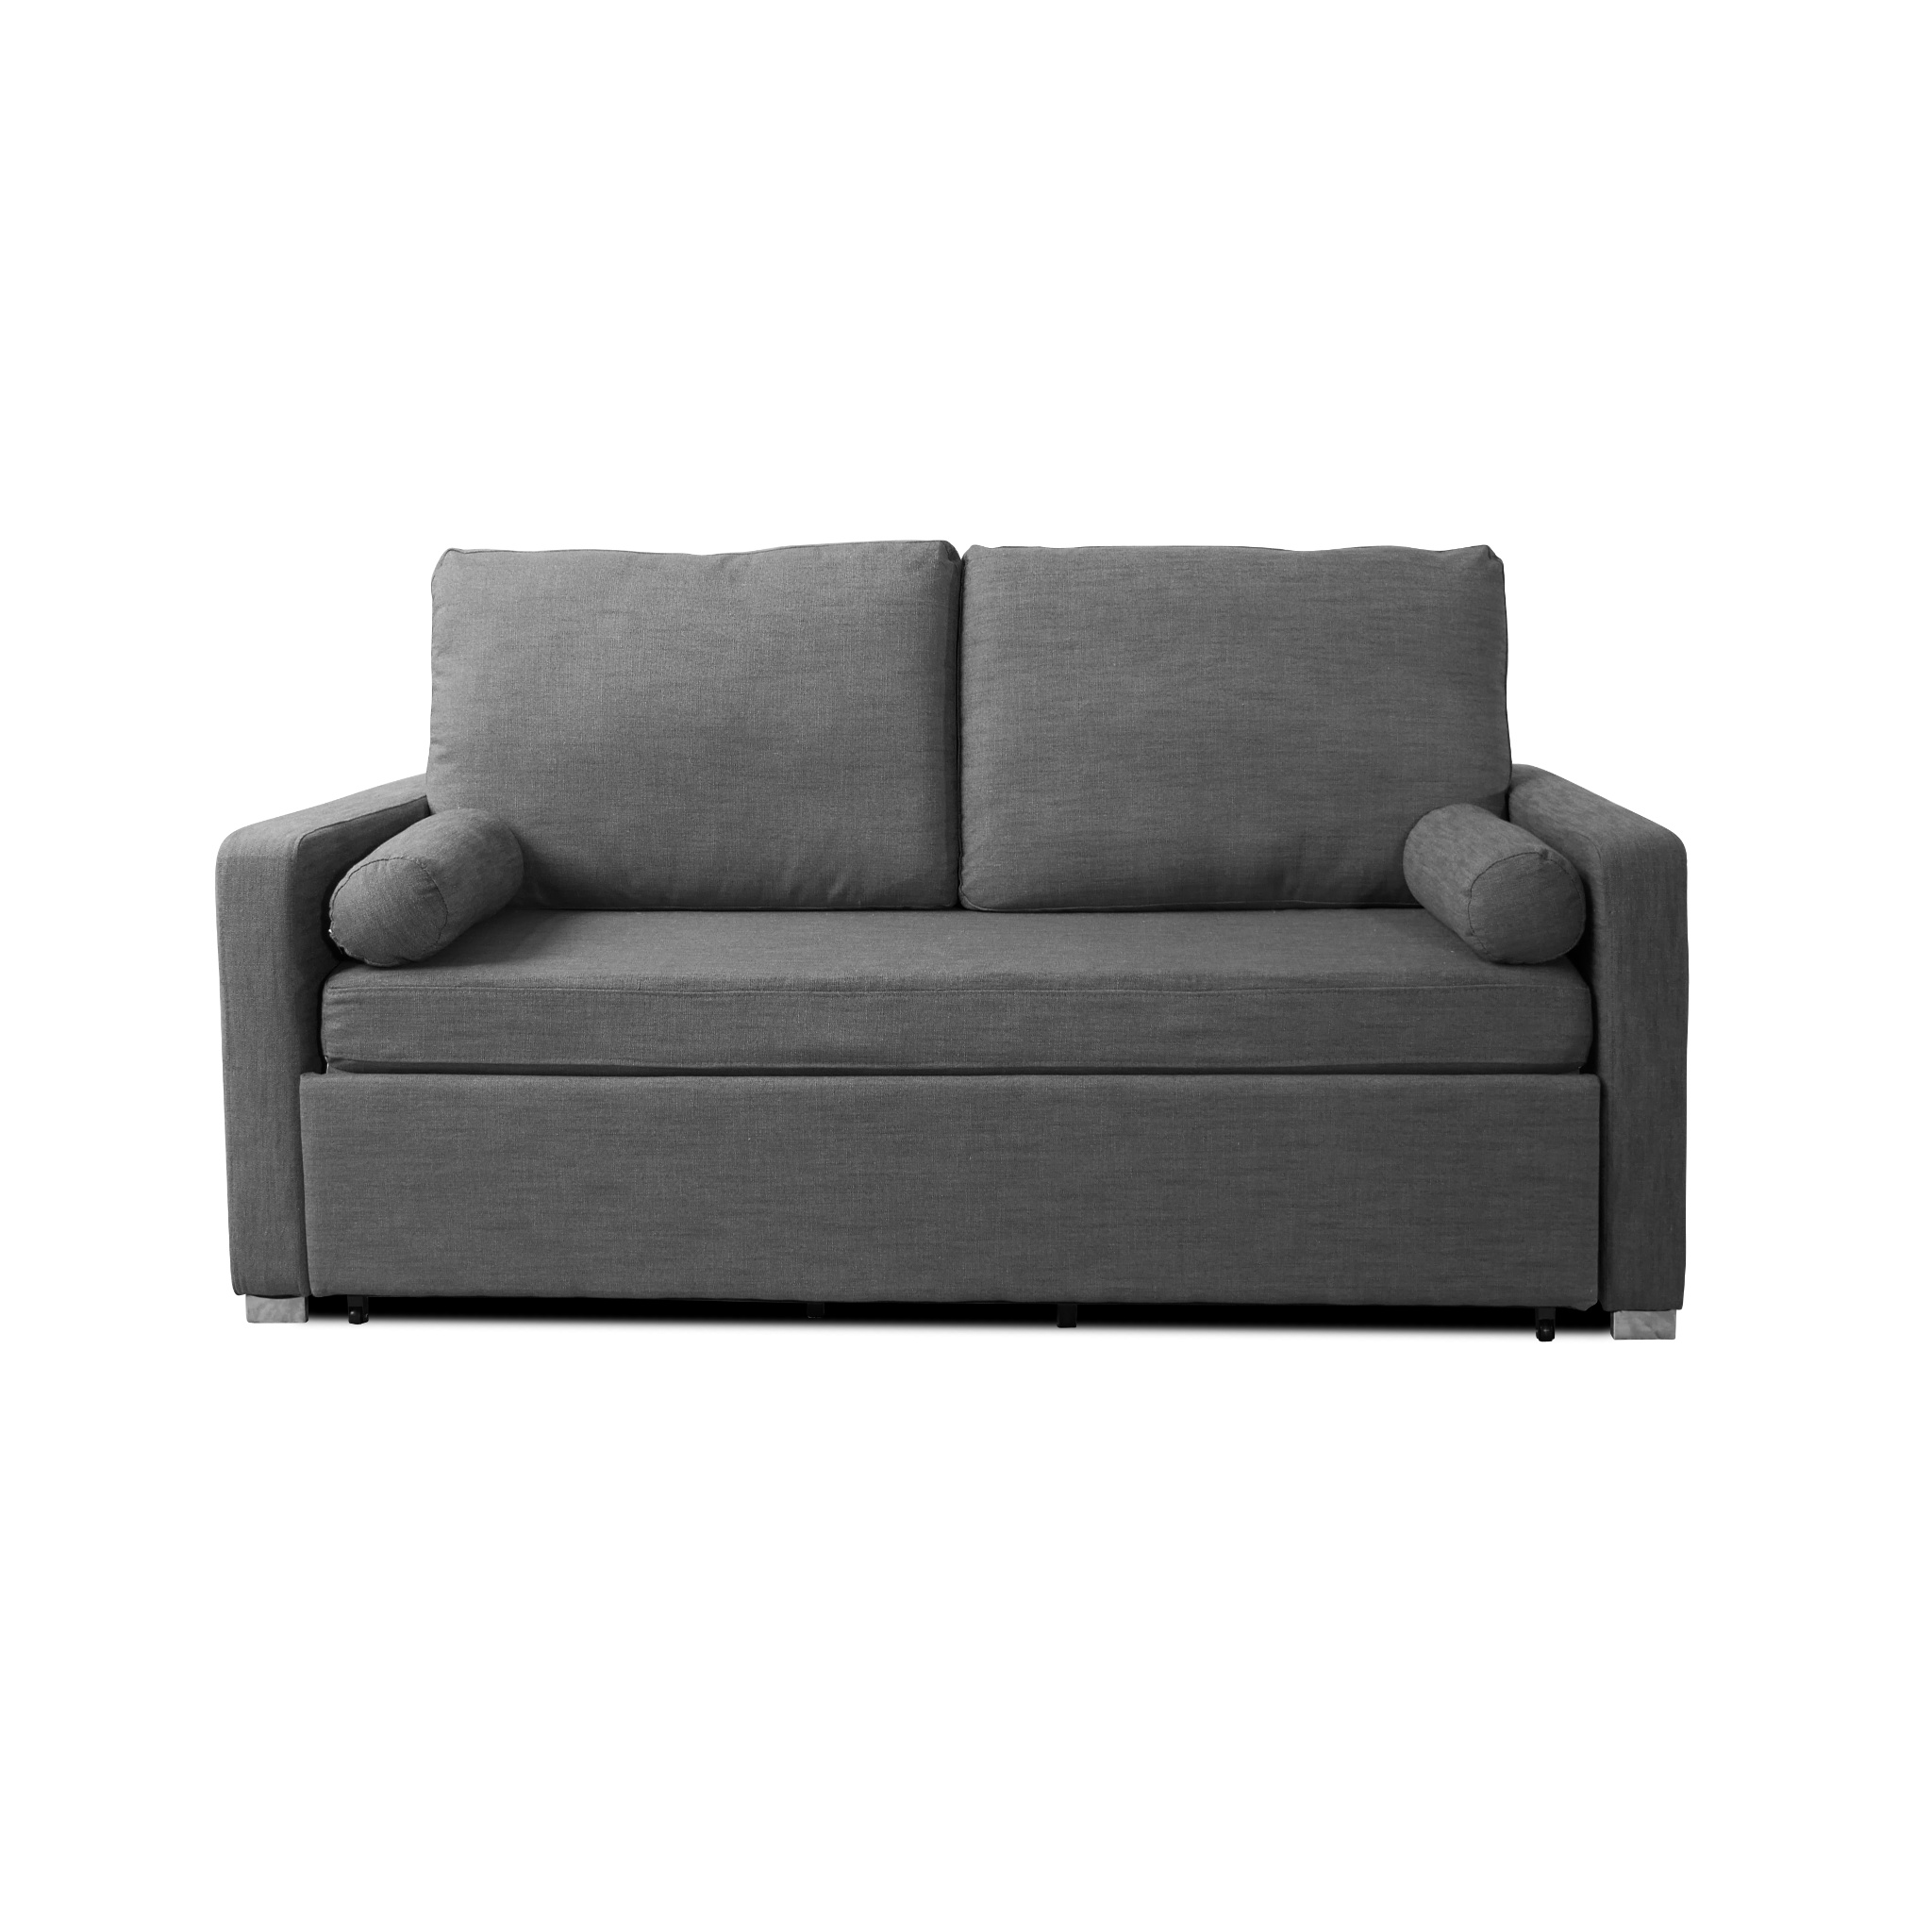 Harmony – Queen Size Memory Foam Sofa Bed